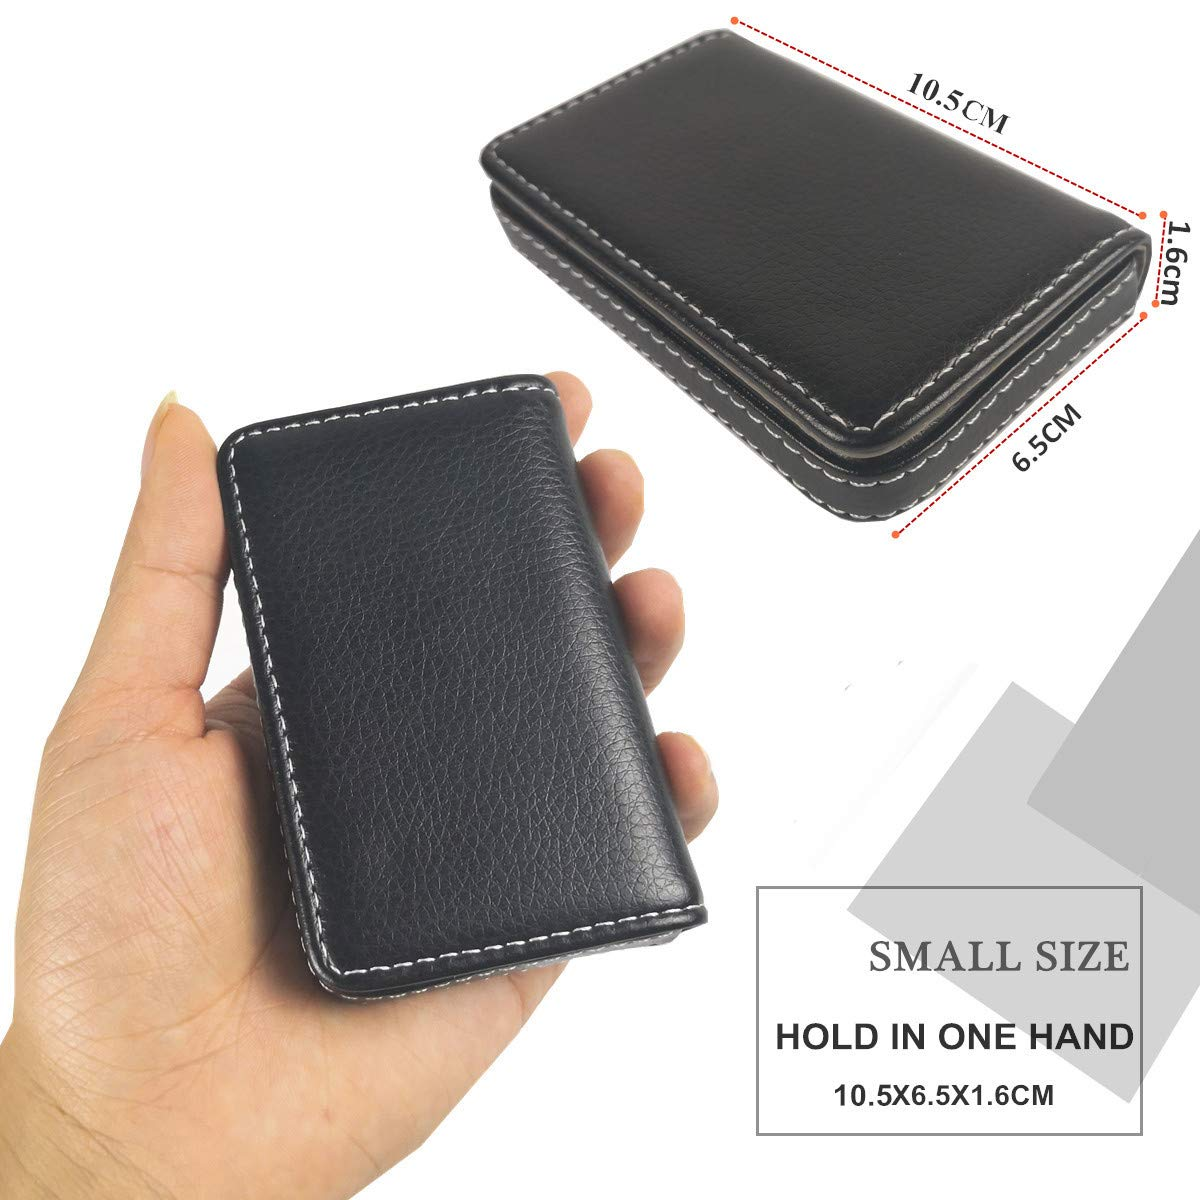 Lucstar Women Men Business Cards Holder Case Personalized Large Capacity Badge Organizer Elegant Portable Small Wallet Durable Faux PU Black